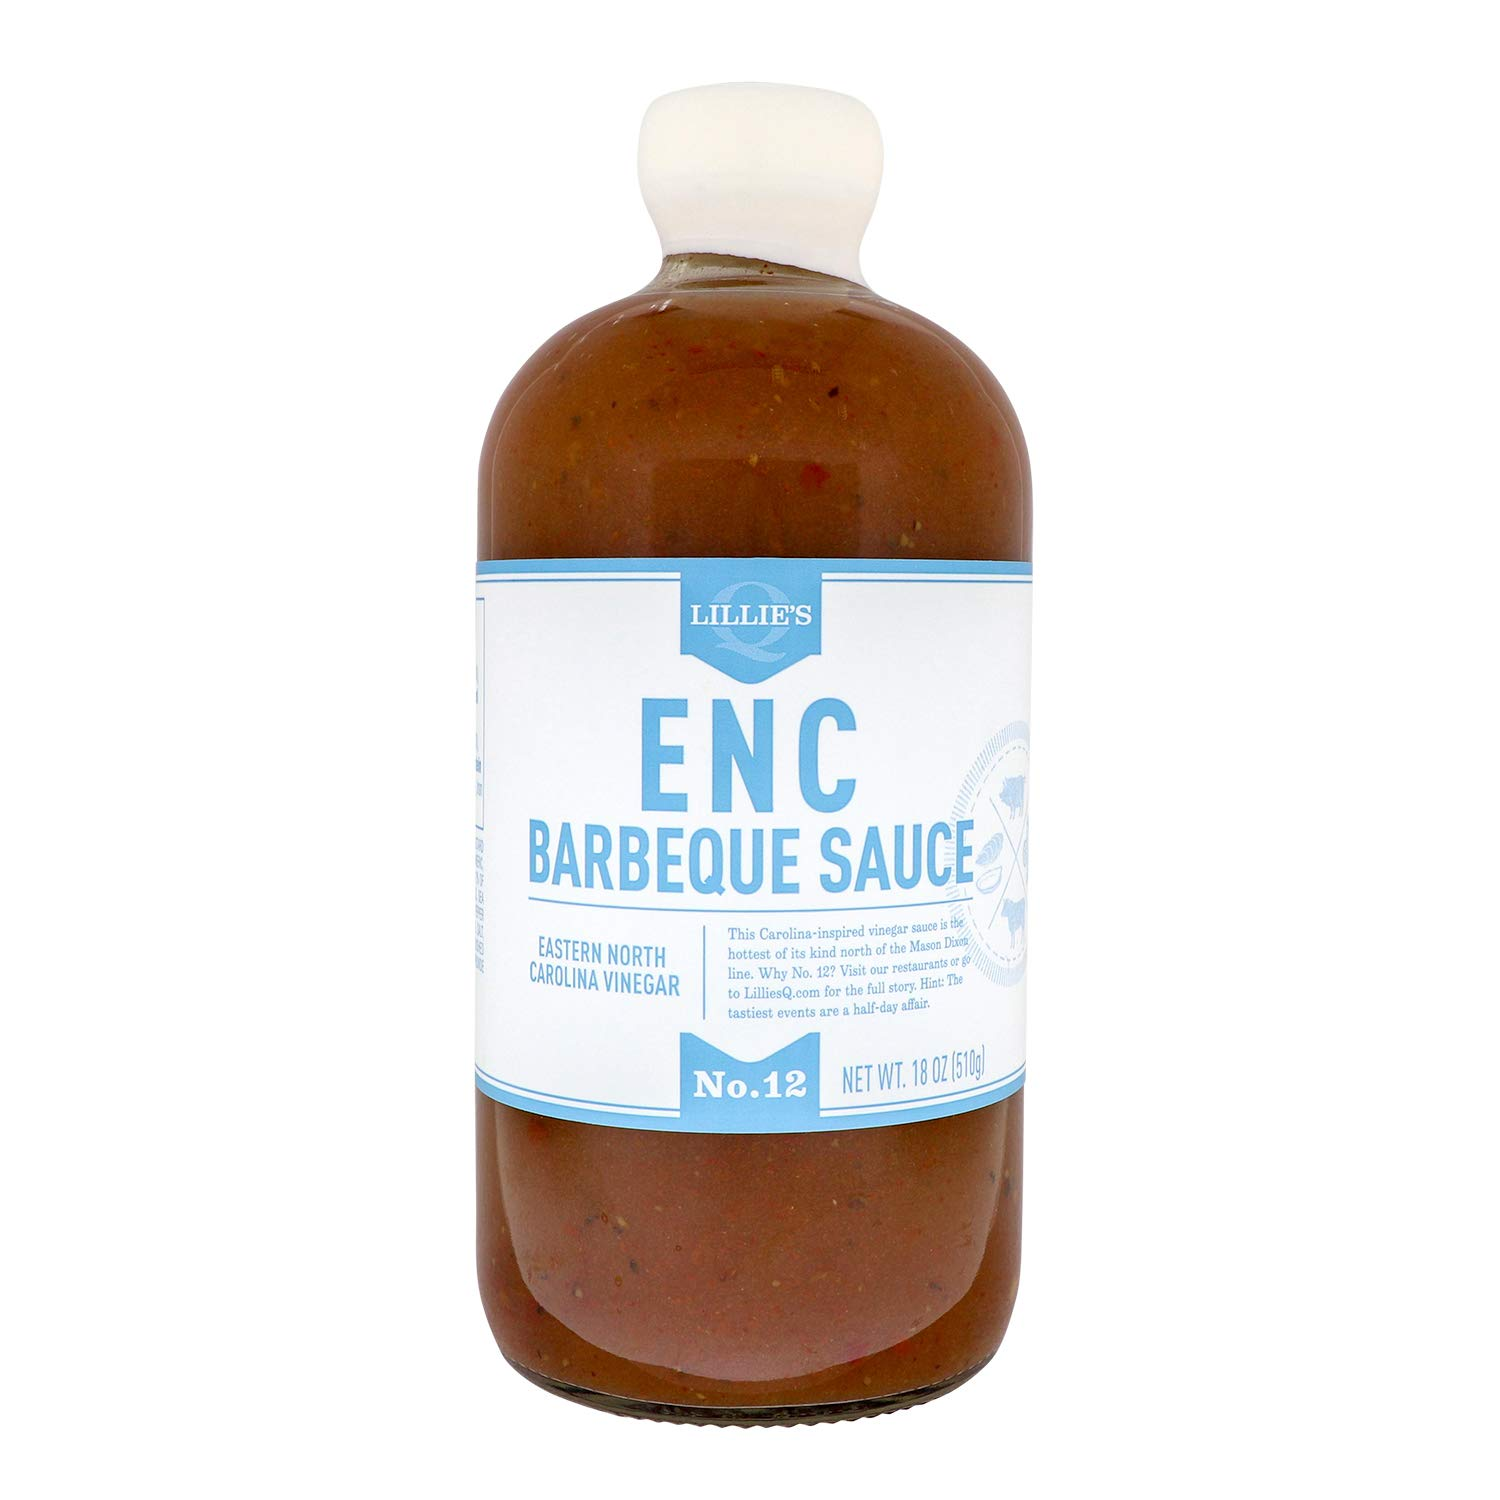 Lillie's Q - ENC Barbeque Sauce, Gourmet BBQ Sauce, Spicy Vinegar BBQ Sauce, All-Natural Ingredients, Made with Gluten-Free Ingredients (18 oz)